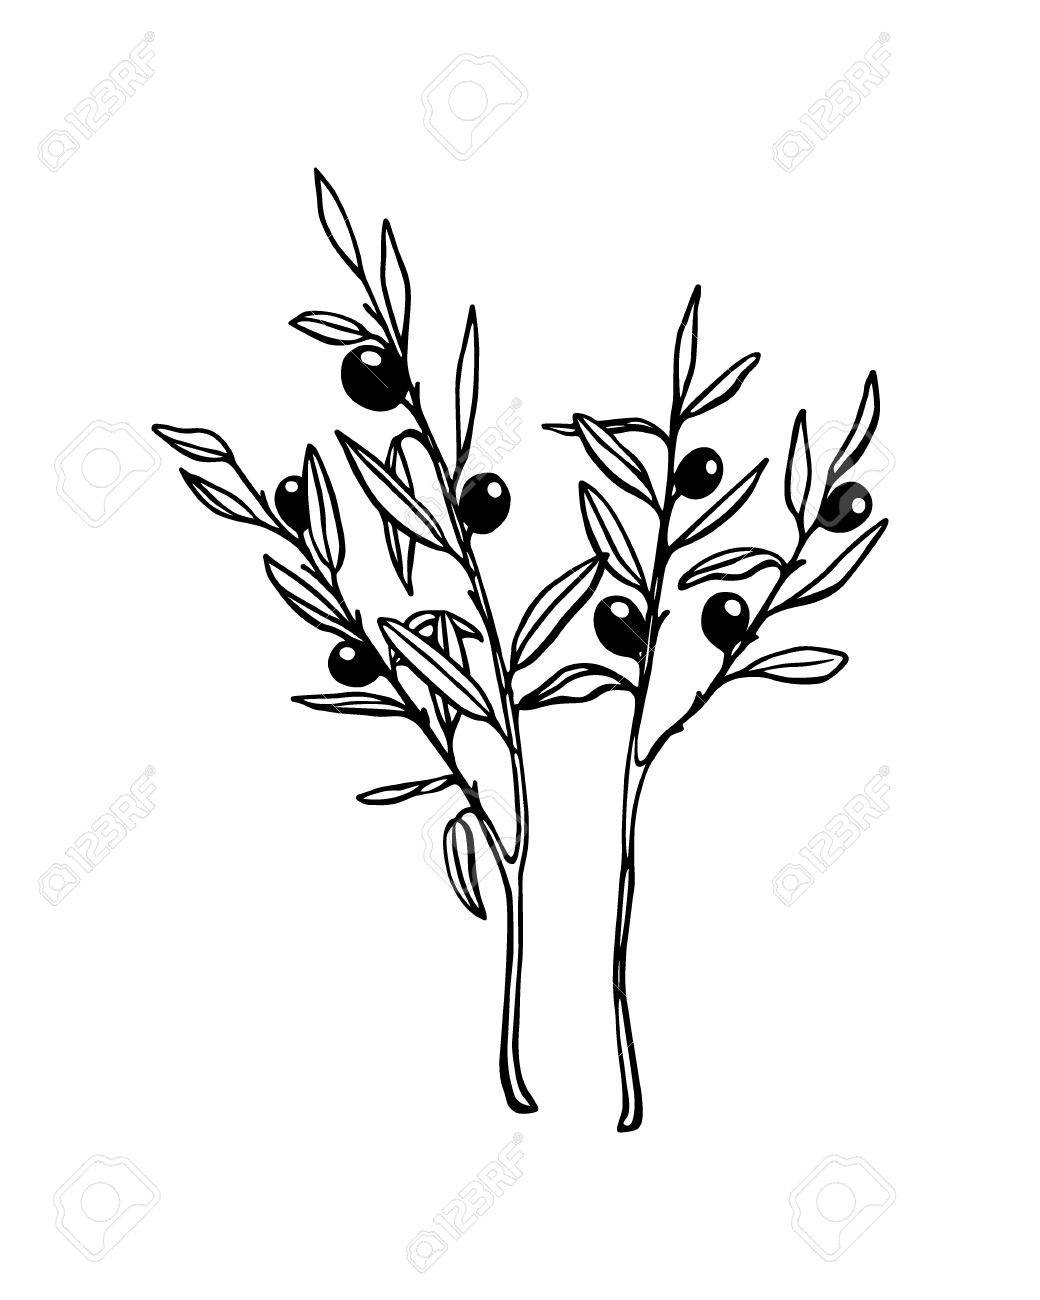 1040x1300 Hand Drawn Olive Branches. Beautiful Ink Drawing. Royalty Free